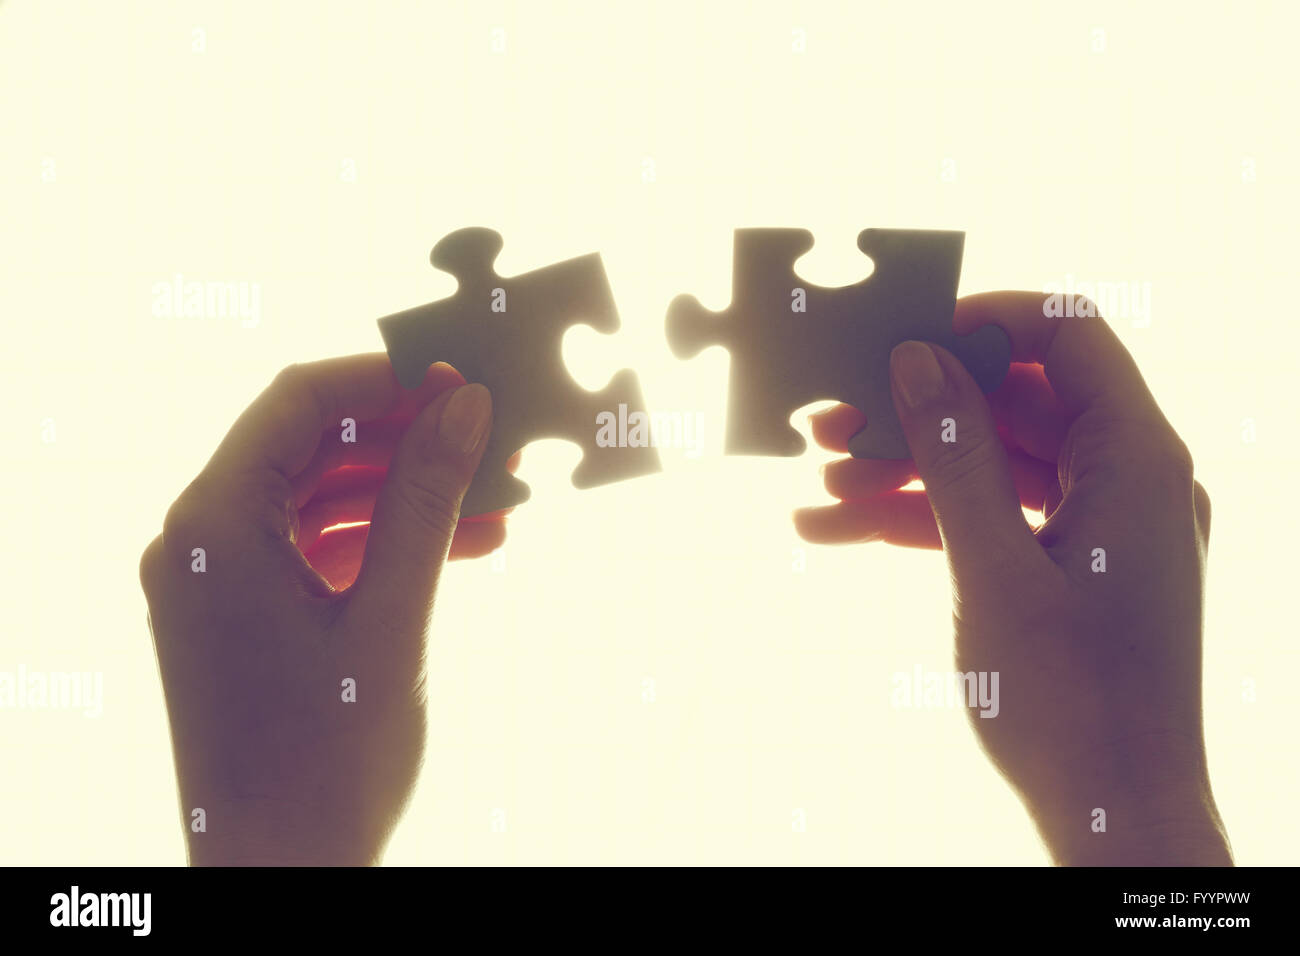 Joining two pieces of jigsaw puzzle. Backlit - Stock Image